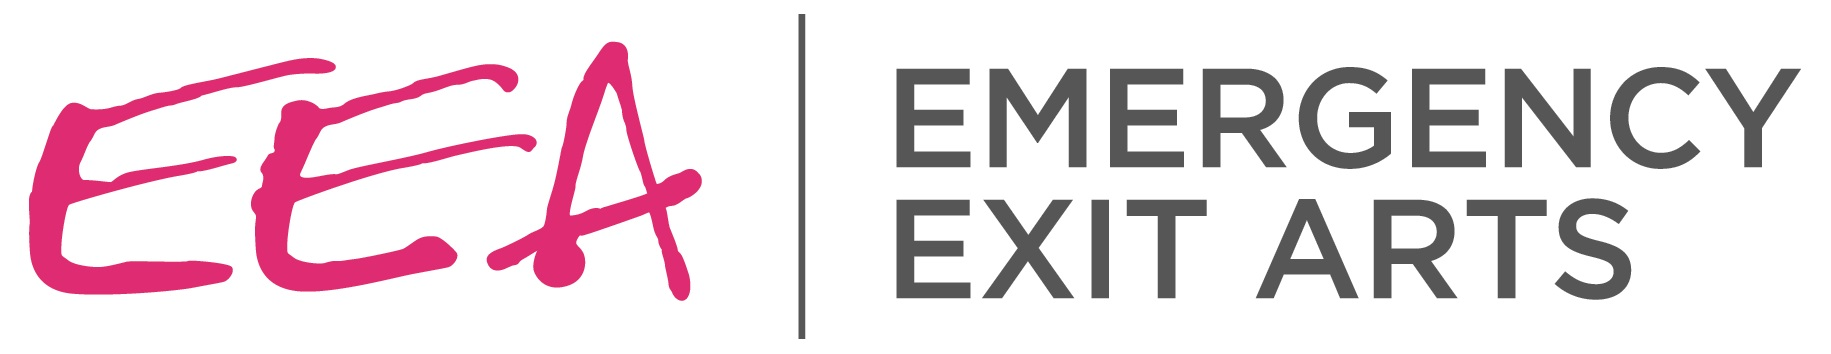 Emergency-Exit-Arts-Logo.jpg